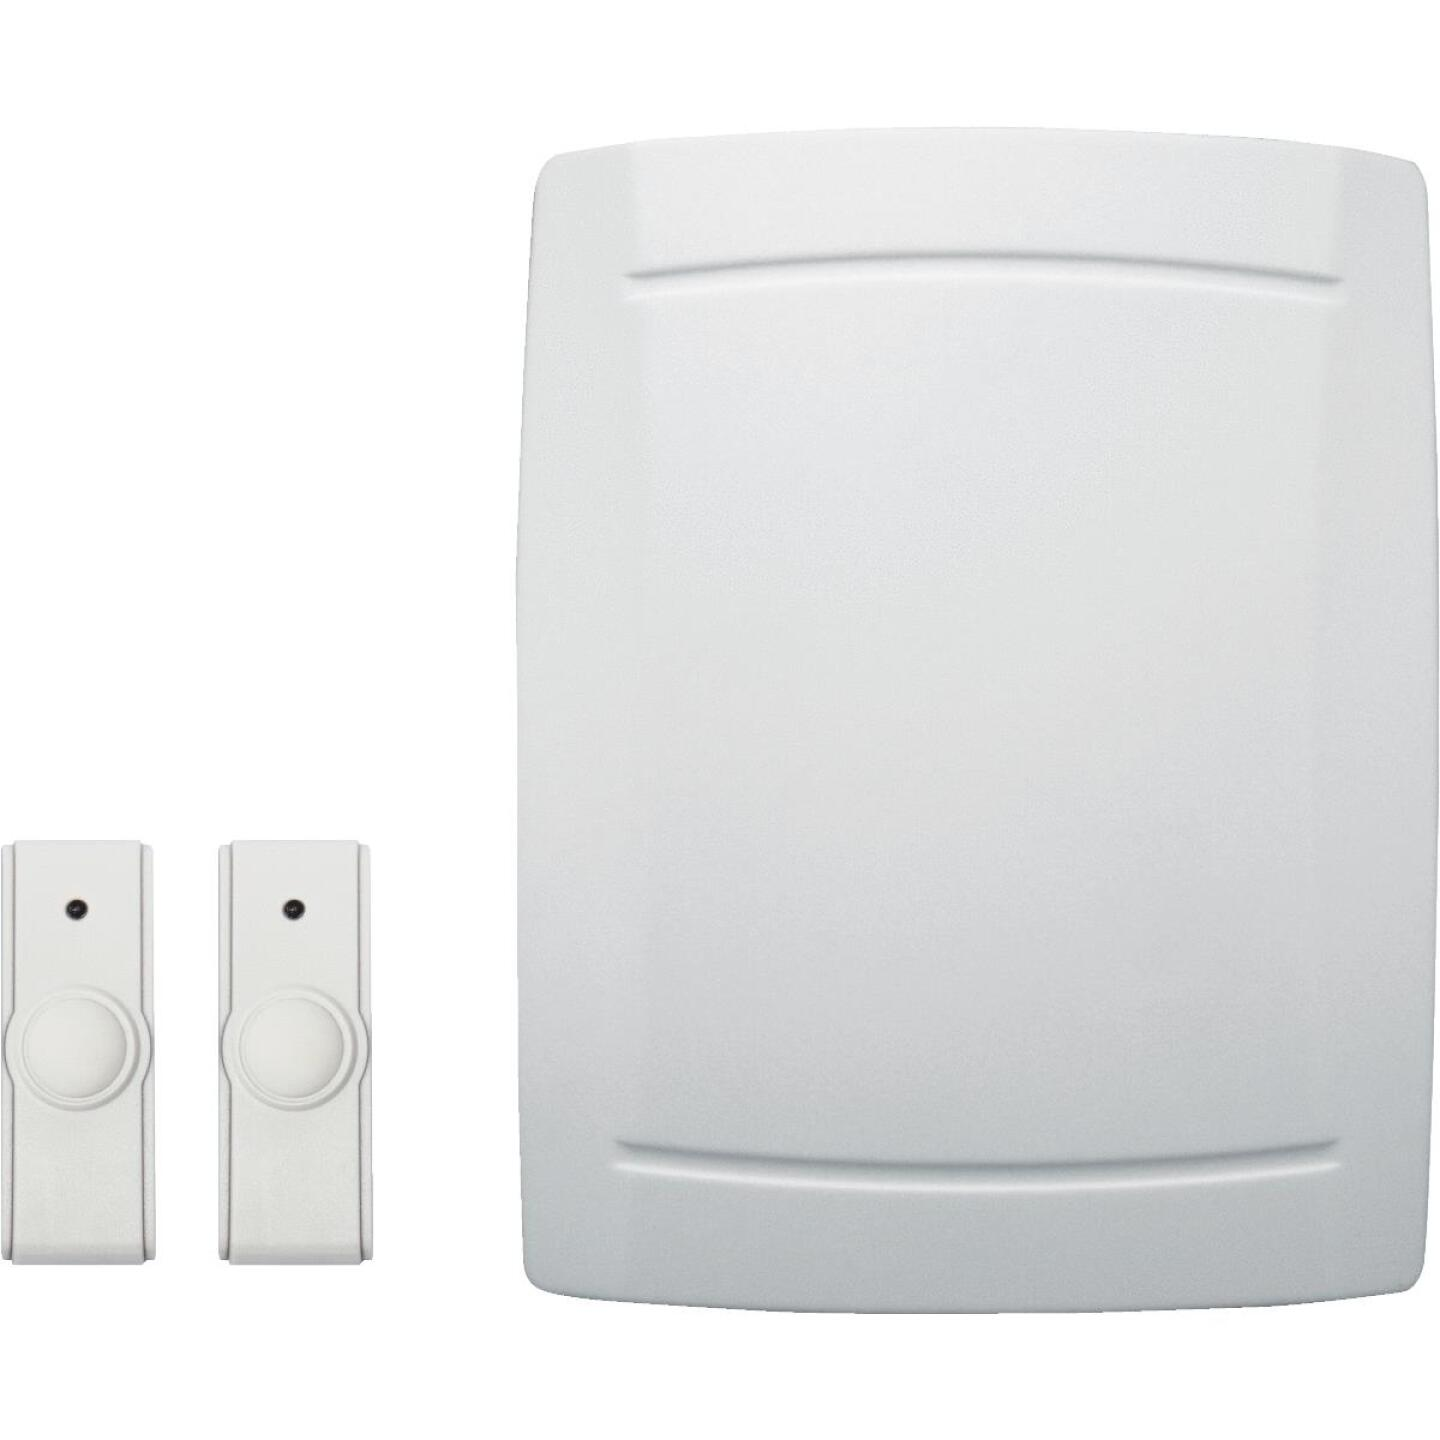 IQ America Step-Up Battery Operated Wireless Off-White Door Chime with 2 Push Buttons Image 1